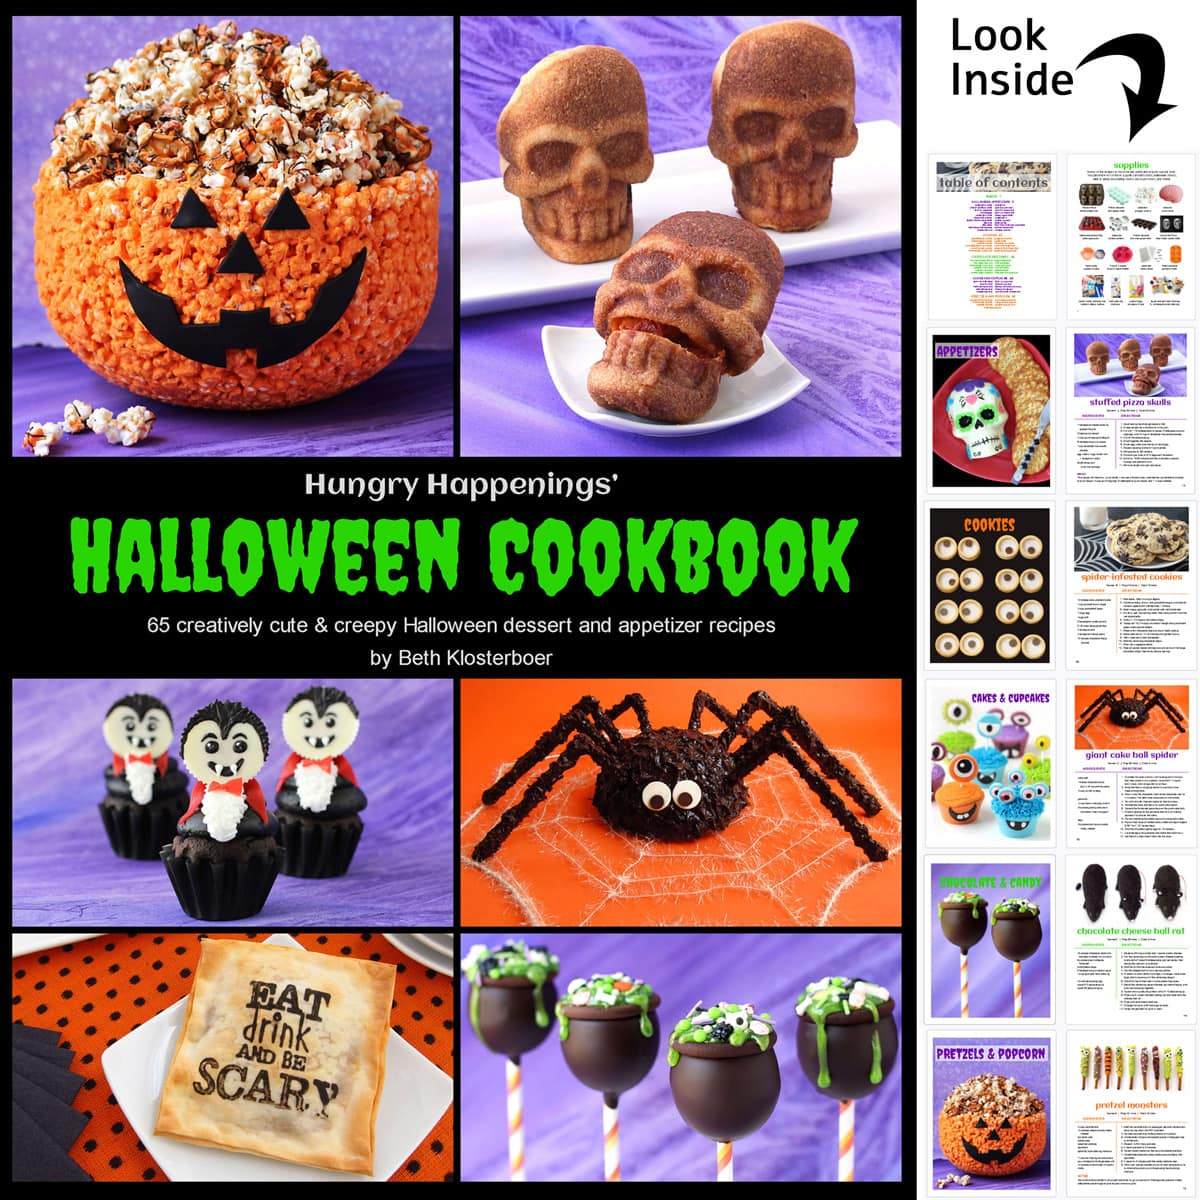 Hungry Happenings' Halloween Cookbook cover featuring a popcorn pumpkin bowl, pizza skulls, vampire cupcakes, a spider cake, stamped wontons, and cake ball cauldrons.